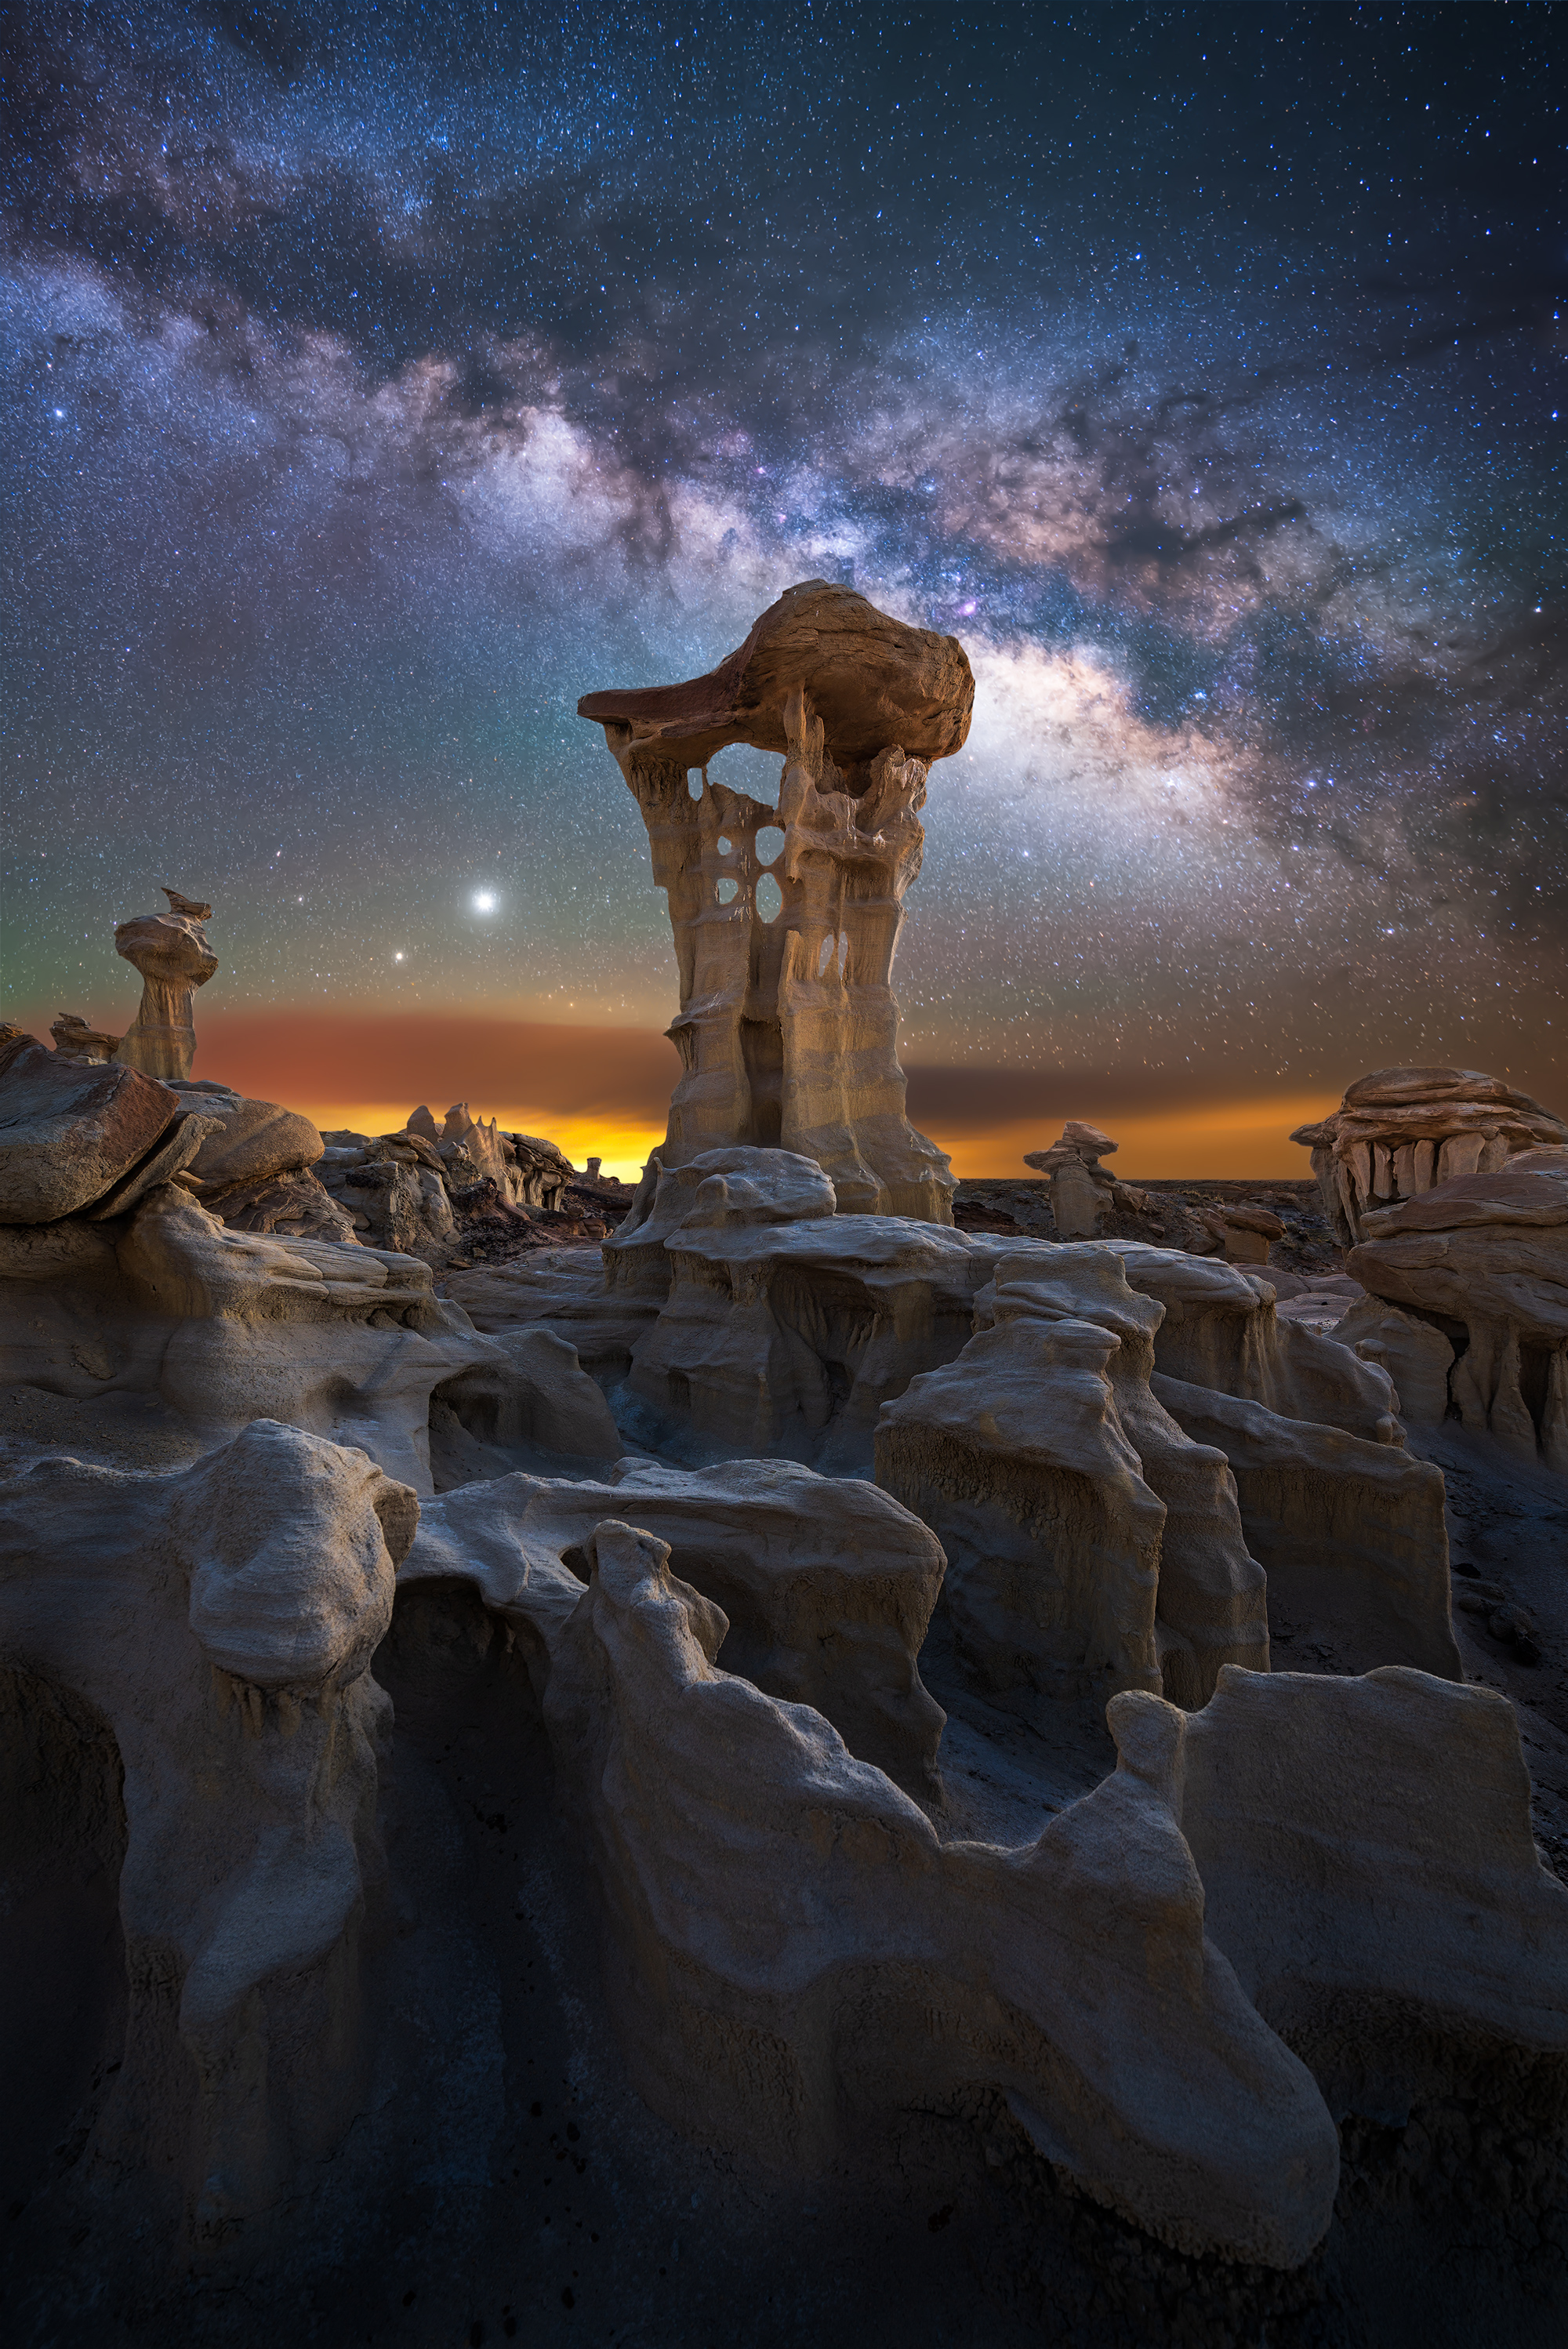 Milky Way, Jupiter and Saturn captured over otherworldly rock formations located in a remote part of New Mexico